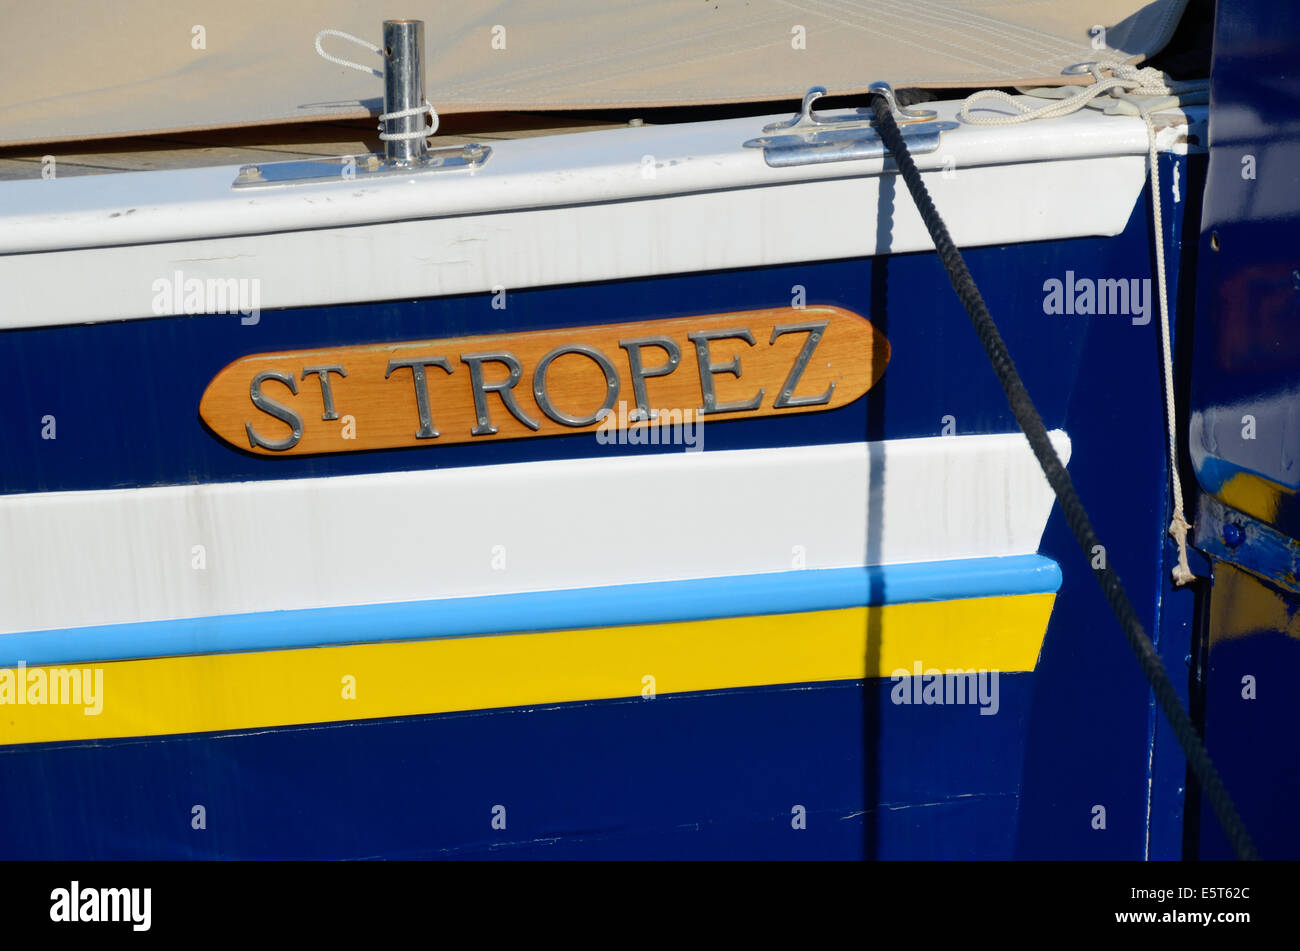 Saint Tropez Traditional Wooden Boat or Fishing Boat in Port or Harbor St Tropez Var Provence France Stock Photo